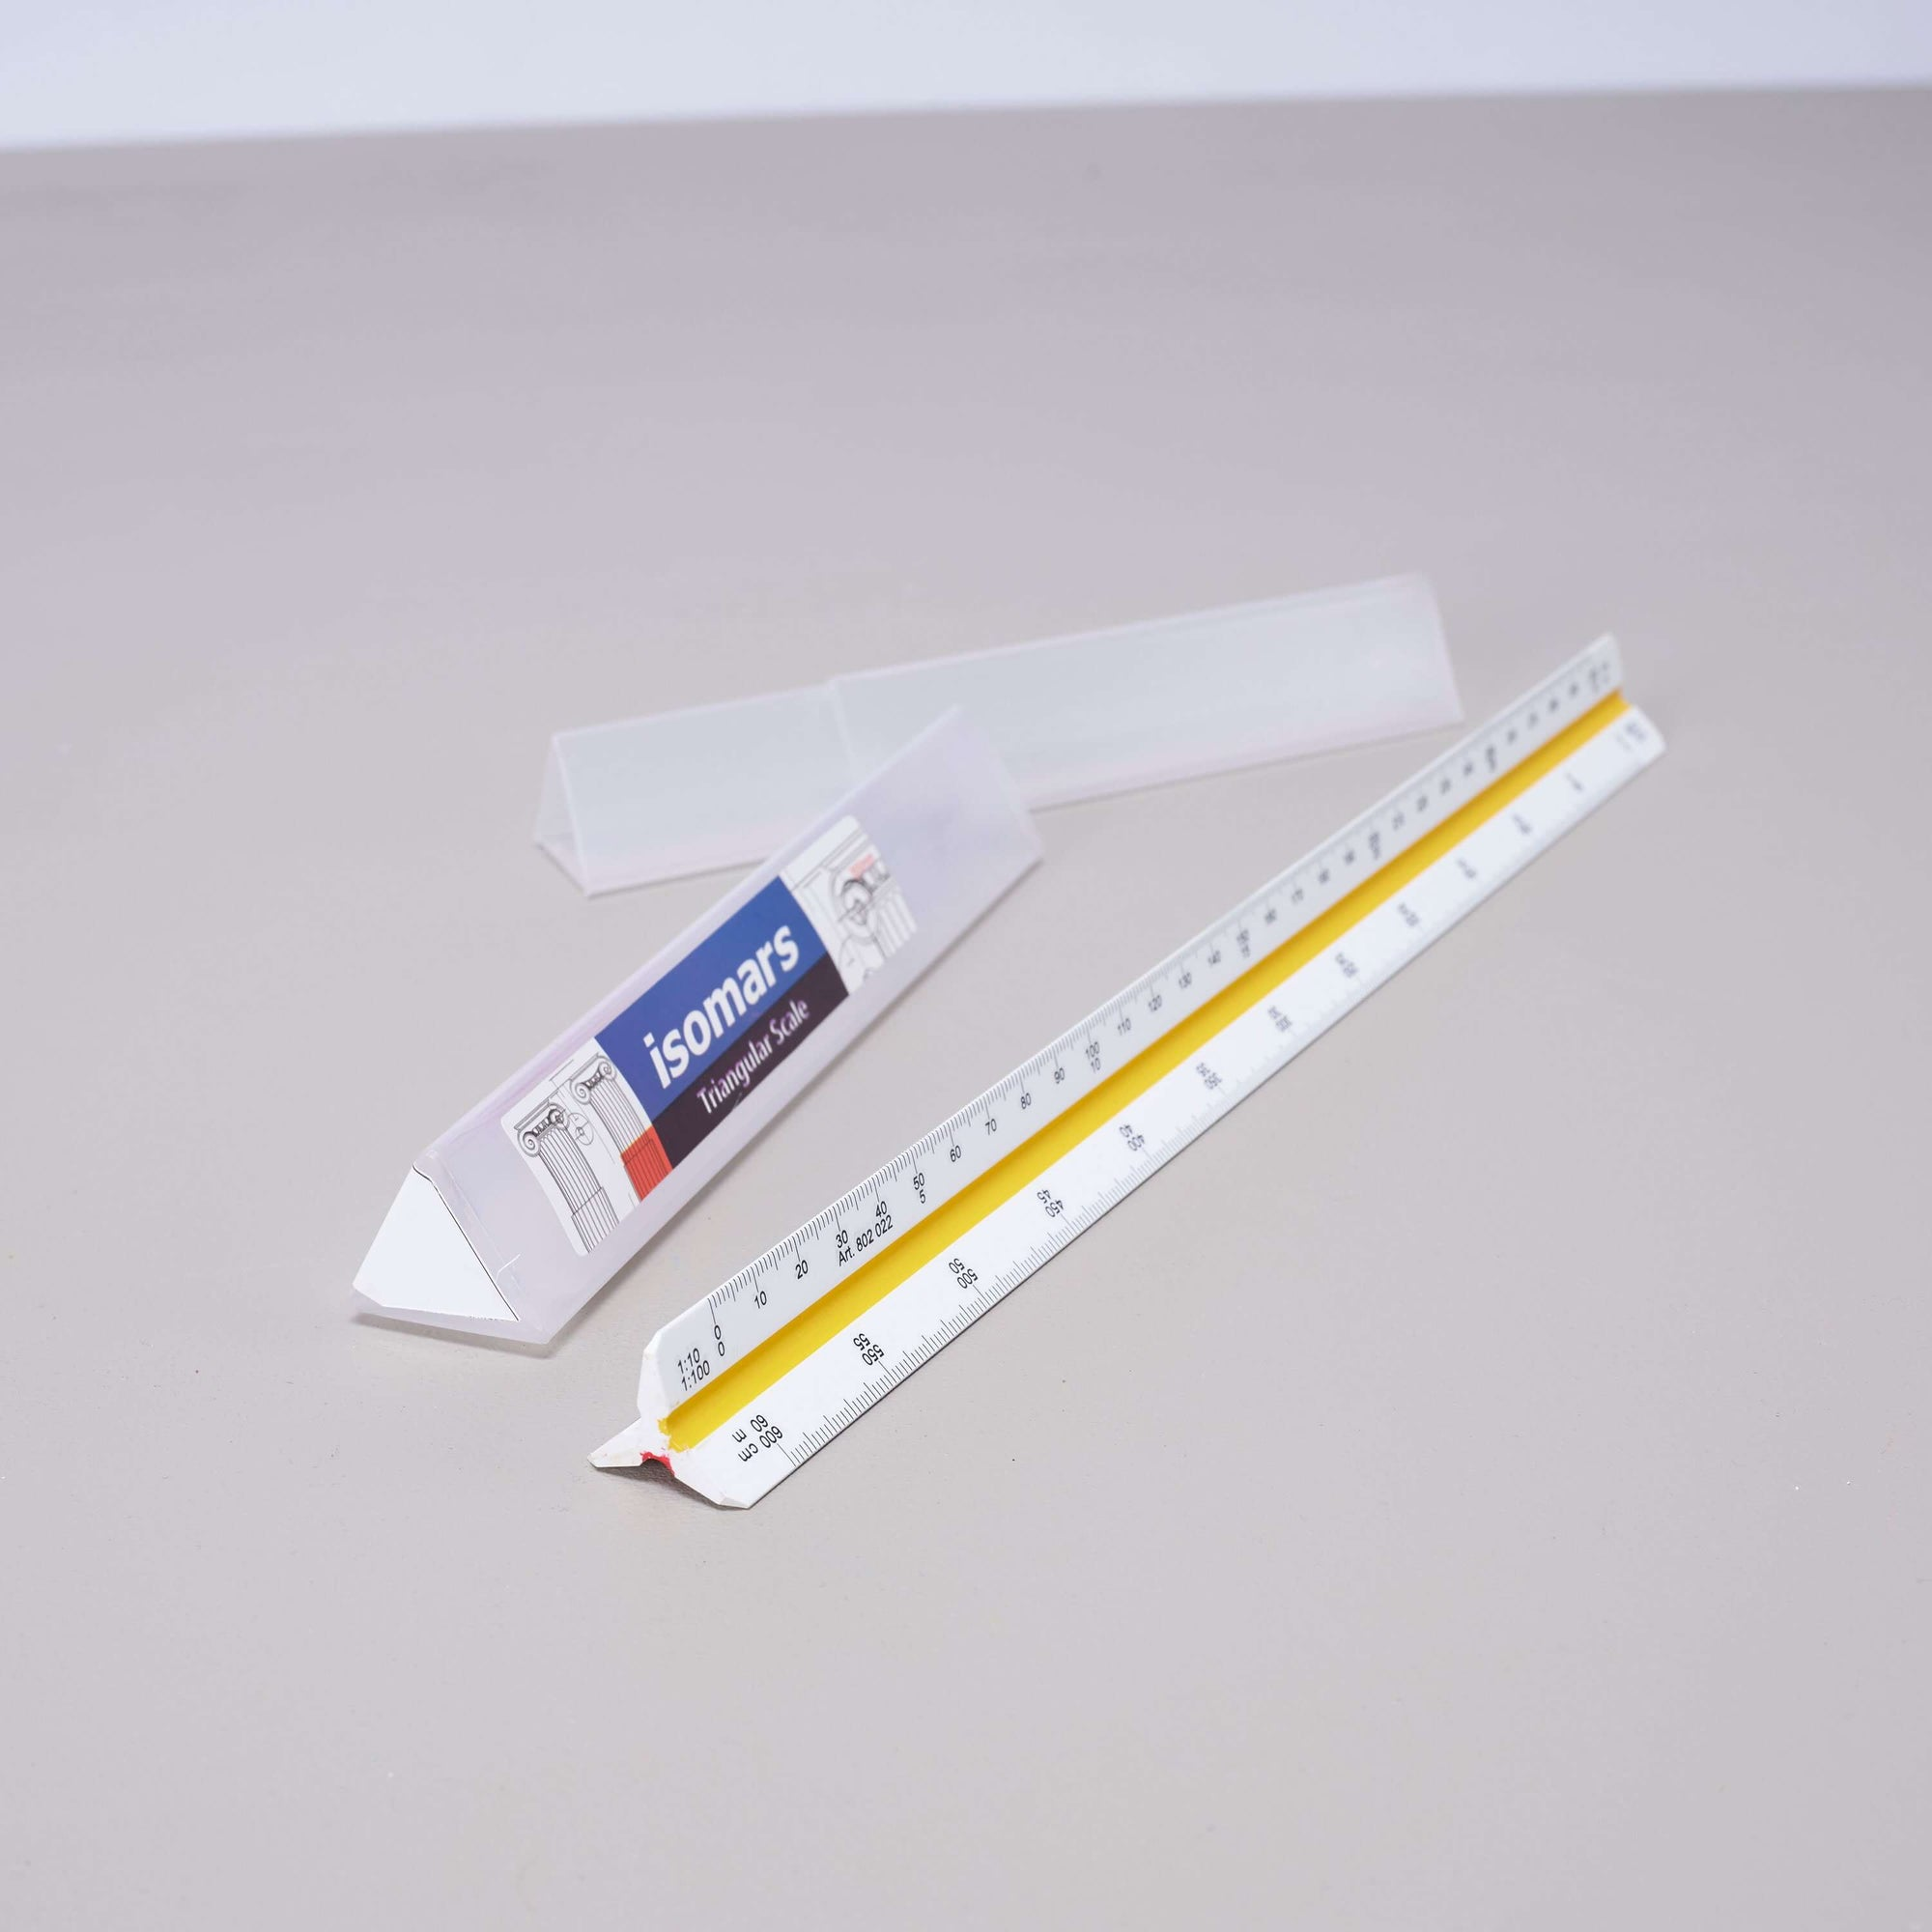 ARTdiscount ISOmars Triangular Scale Ruler - Metric - No.2